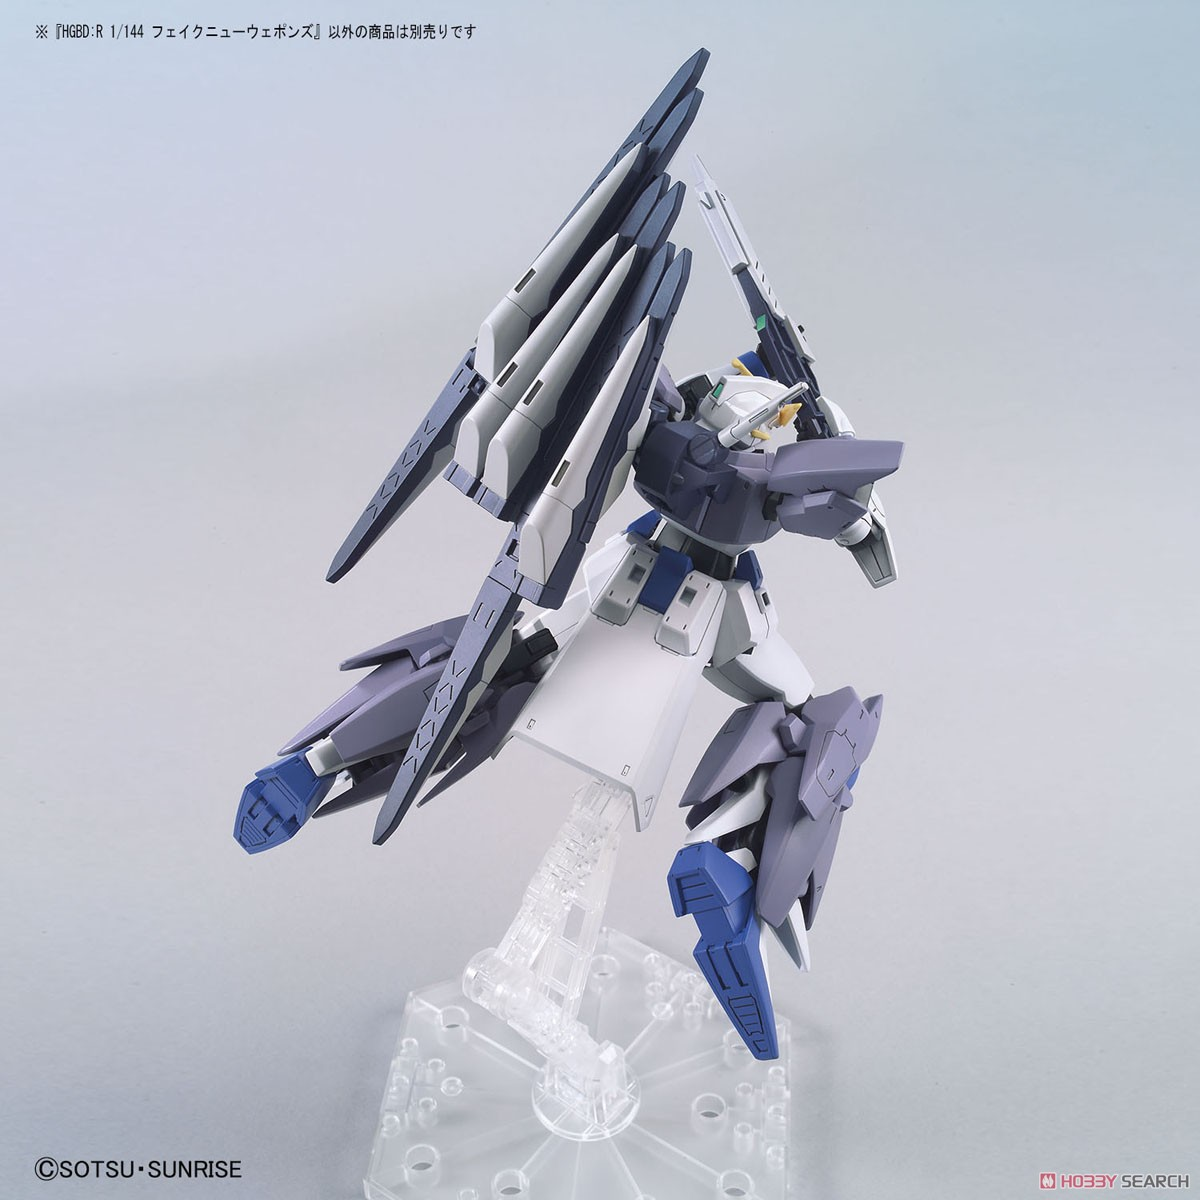 Fake Nu Weapons (HGBD:R) (Gundam Model Kits) Other picture4